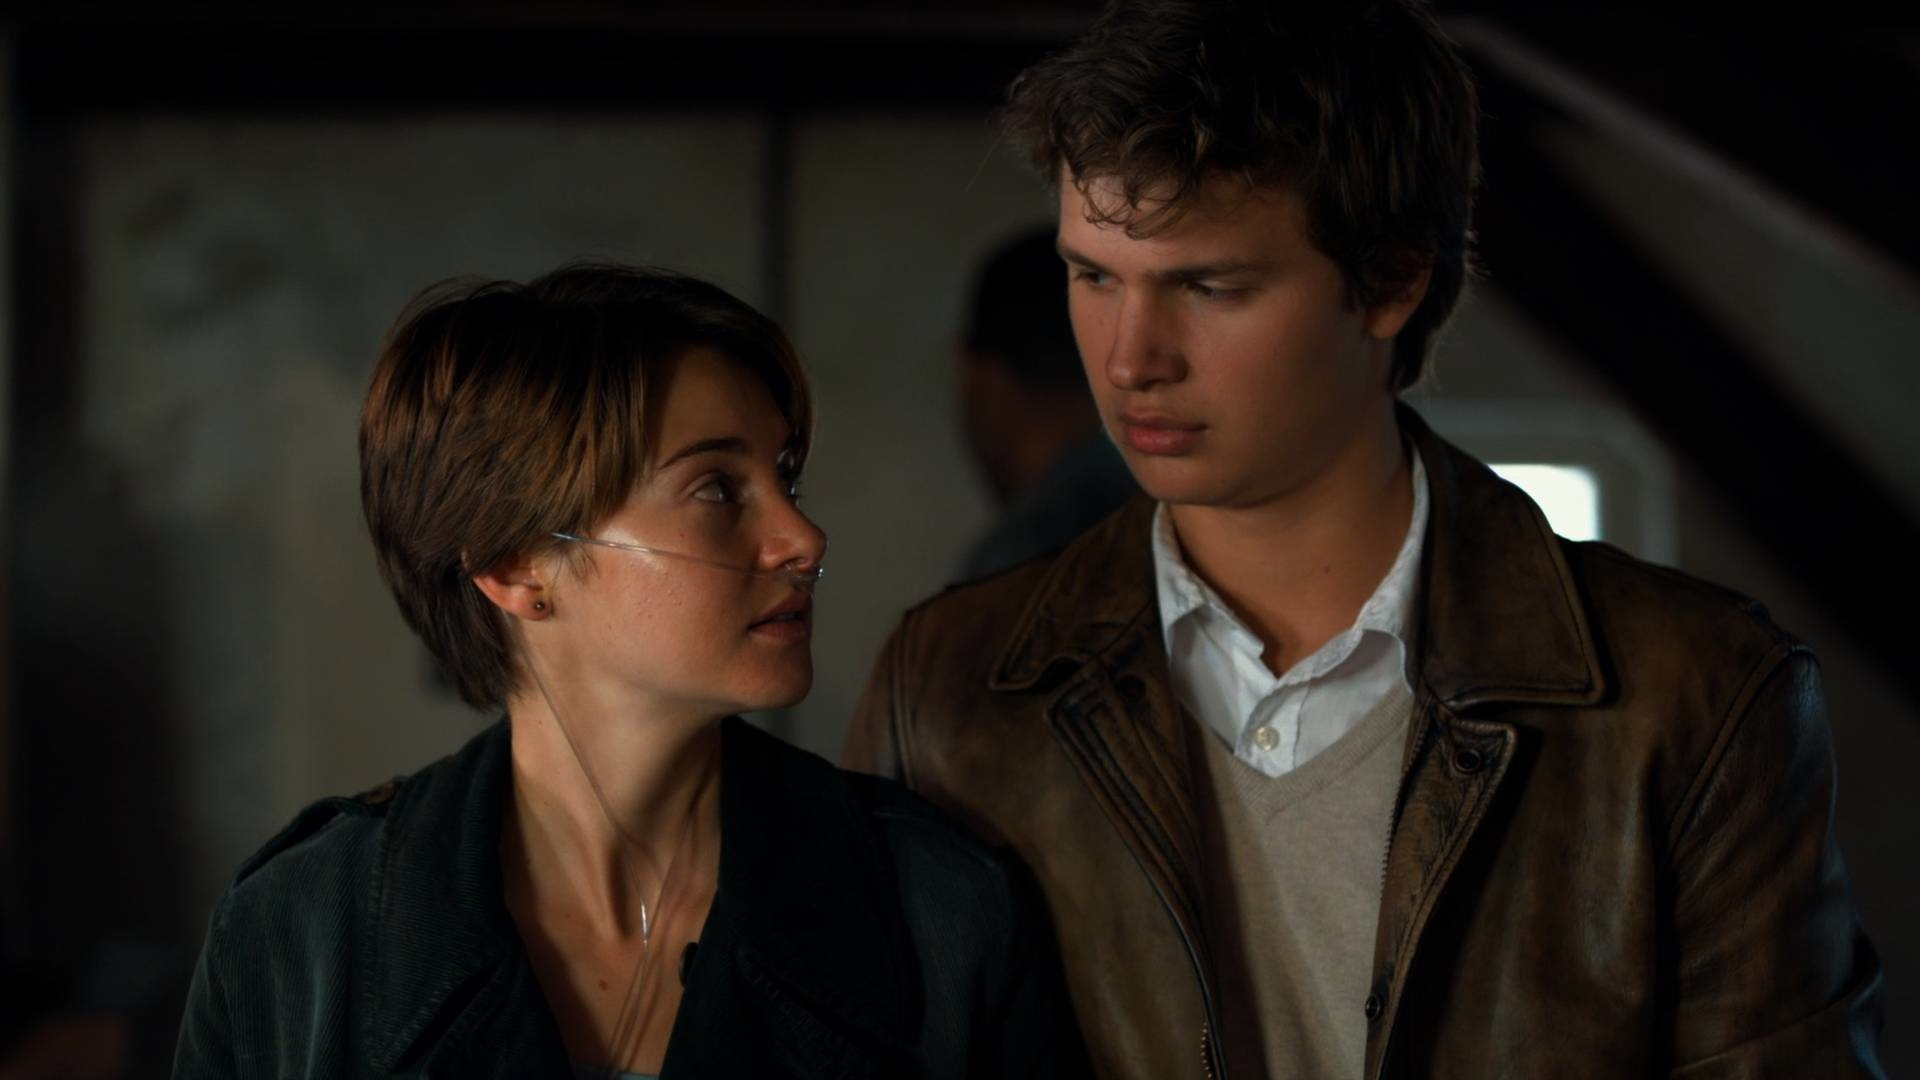 Most Inspiring Wallpaper Movie The Fault In Our Stars - Fault-in-Our-Stars  Pictures_7035100.jpg